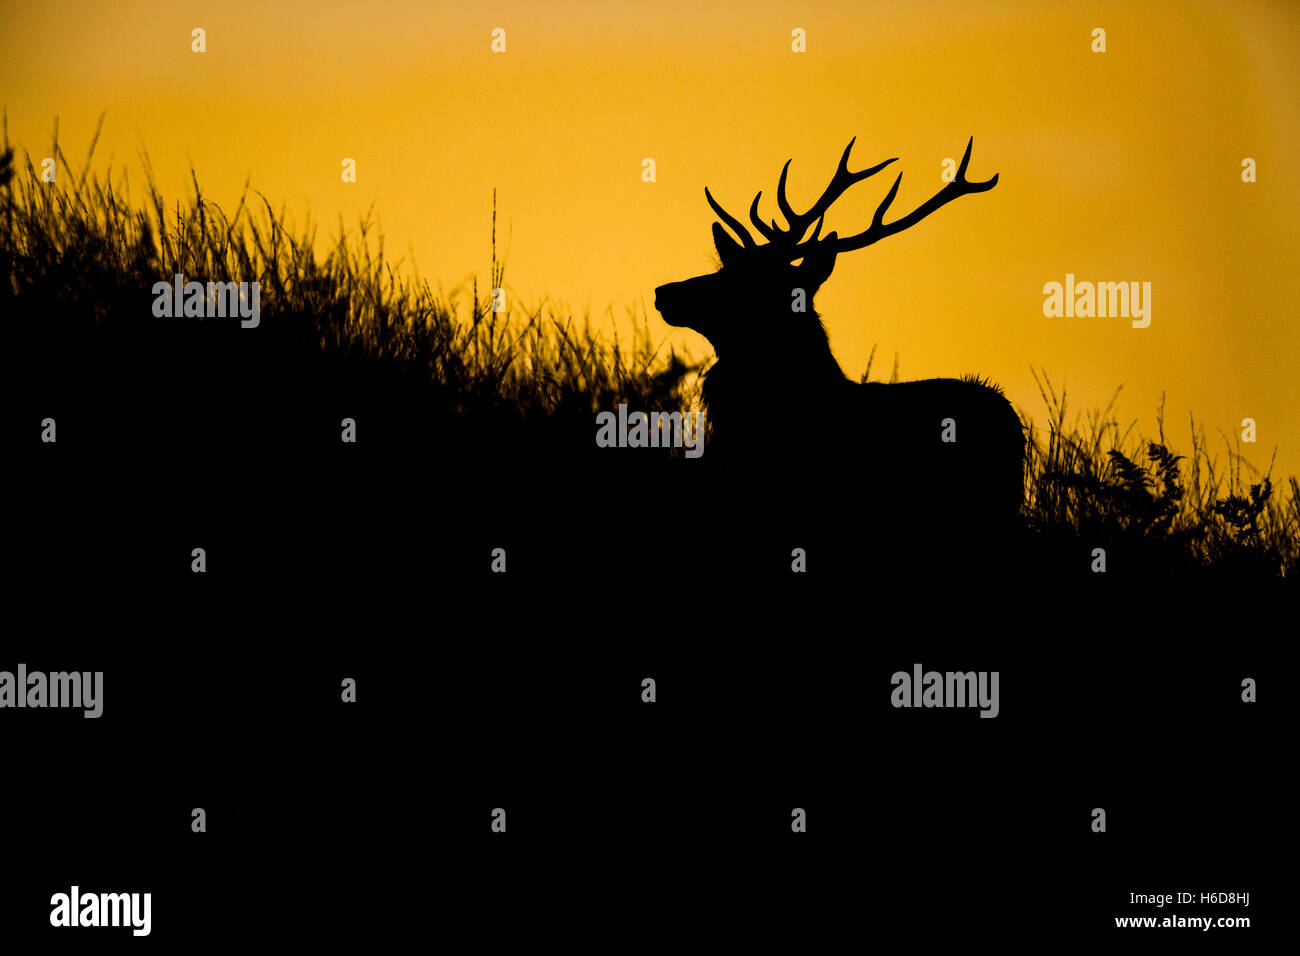 Silhouette of Red Deer stag in golden light. - Stock Image